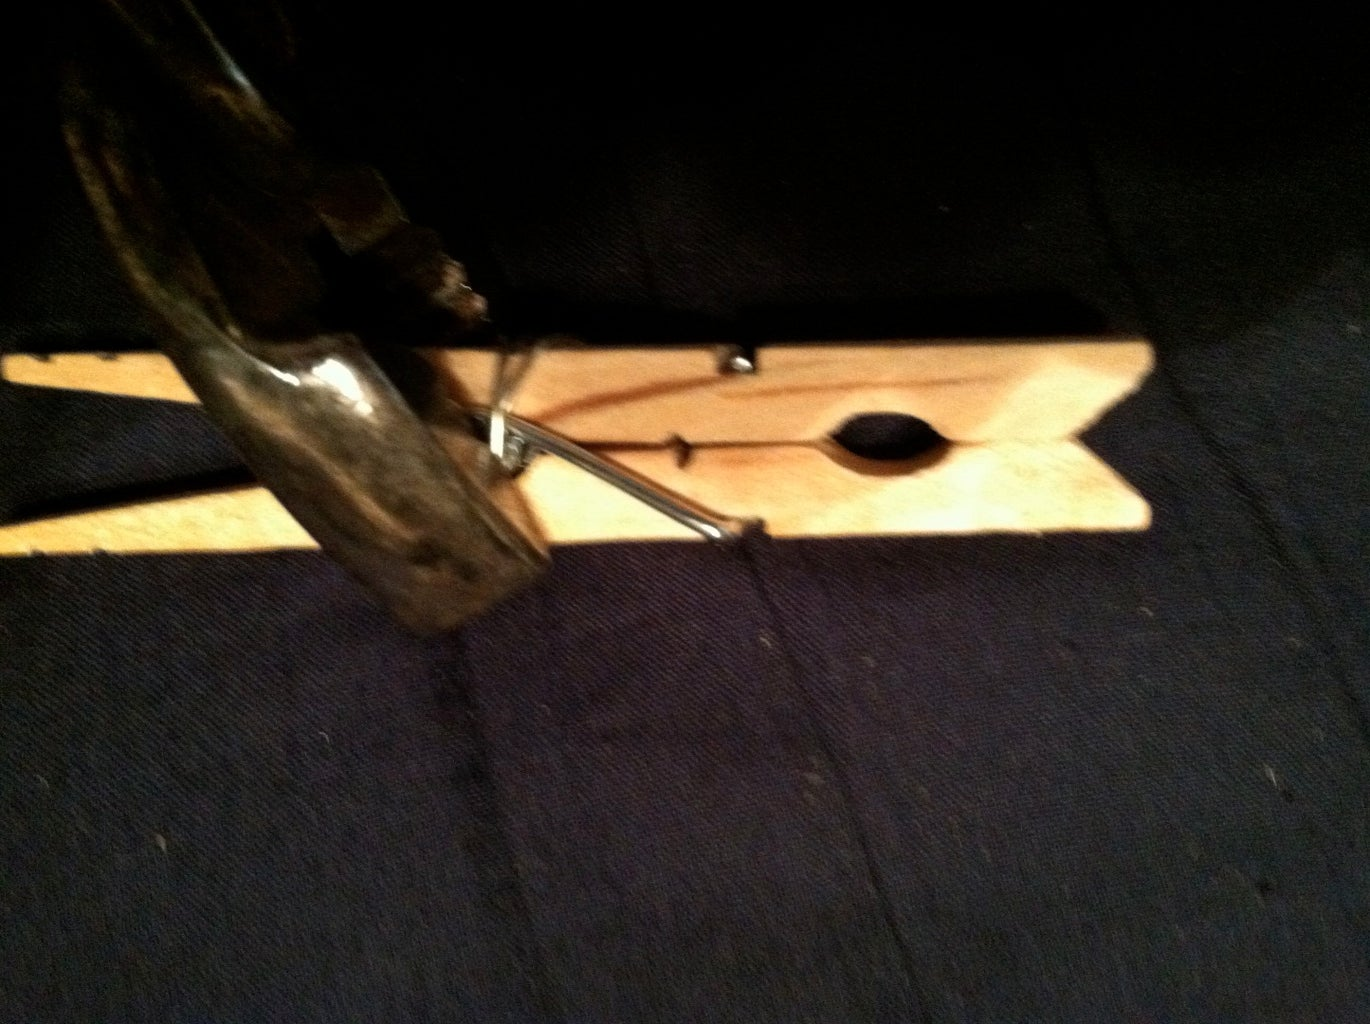 Securing Sharp End Between Wooden Pieces